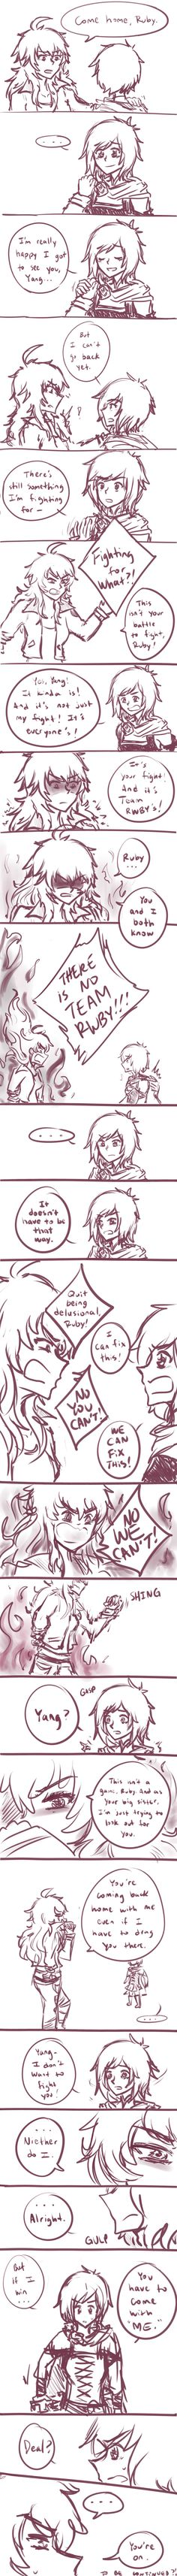 http://knowyourmeme.com/photos/1154713-rwby I WANT THIS TO HAPPEN IN VOLUME 4!